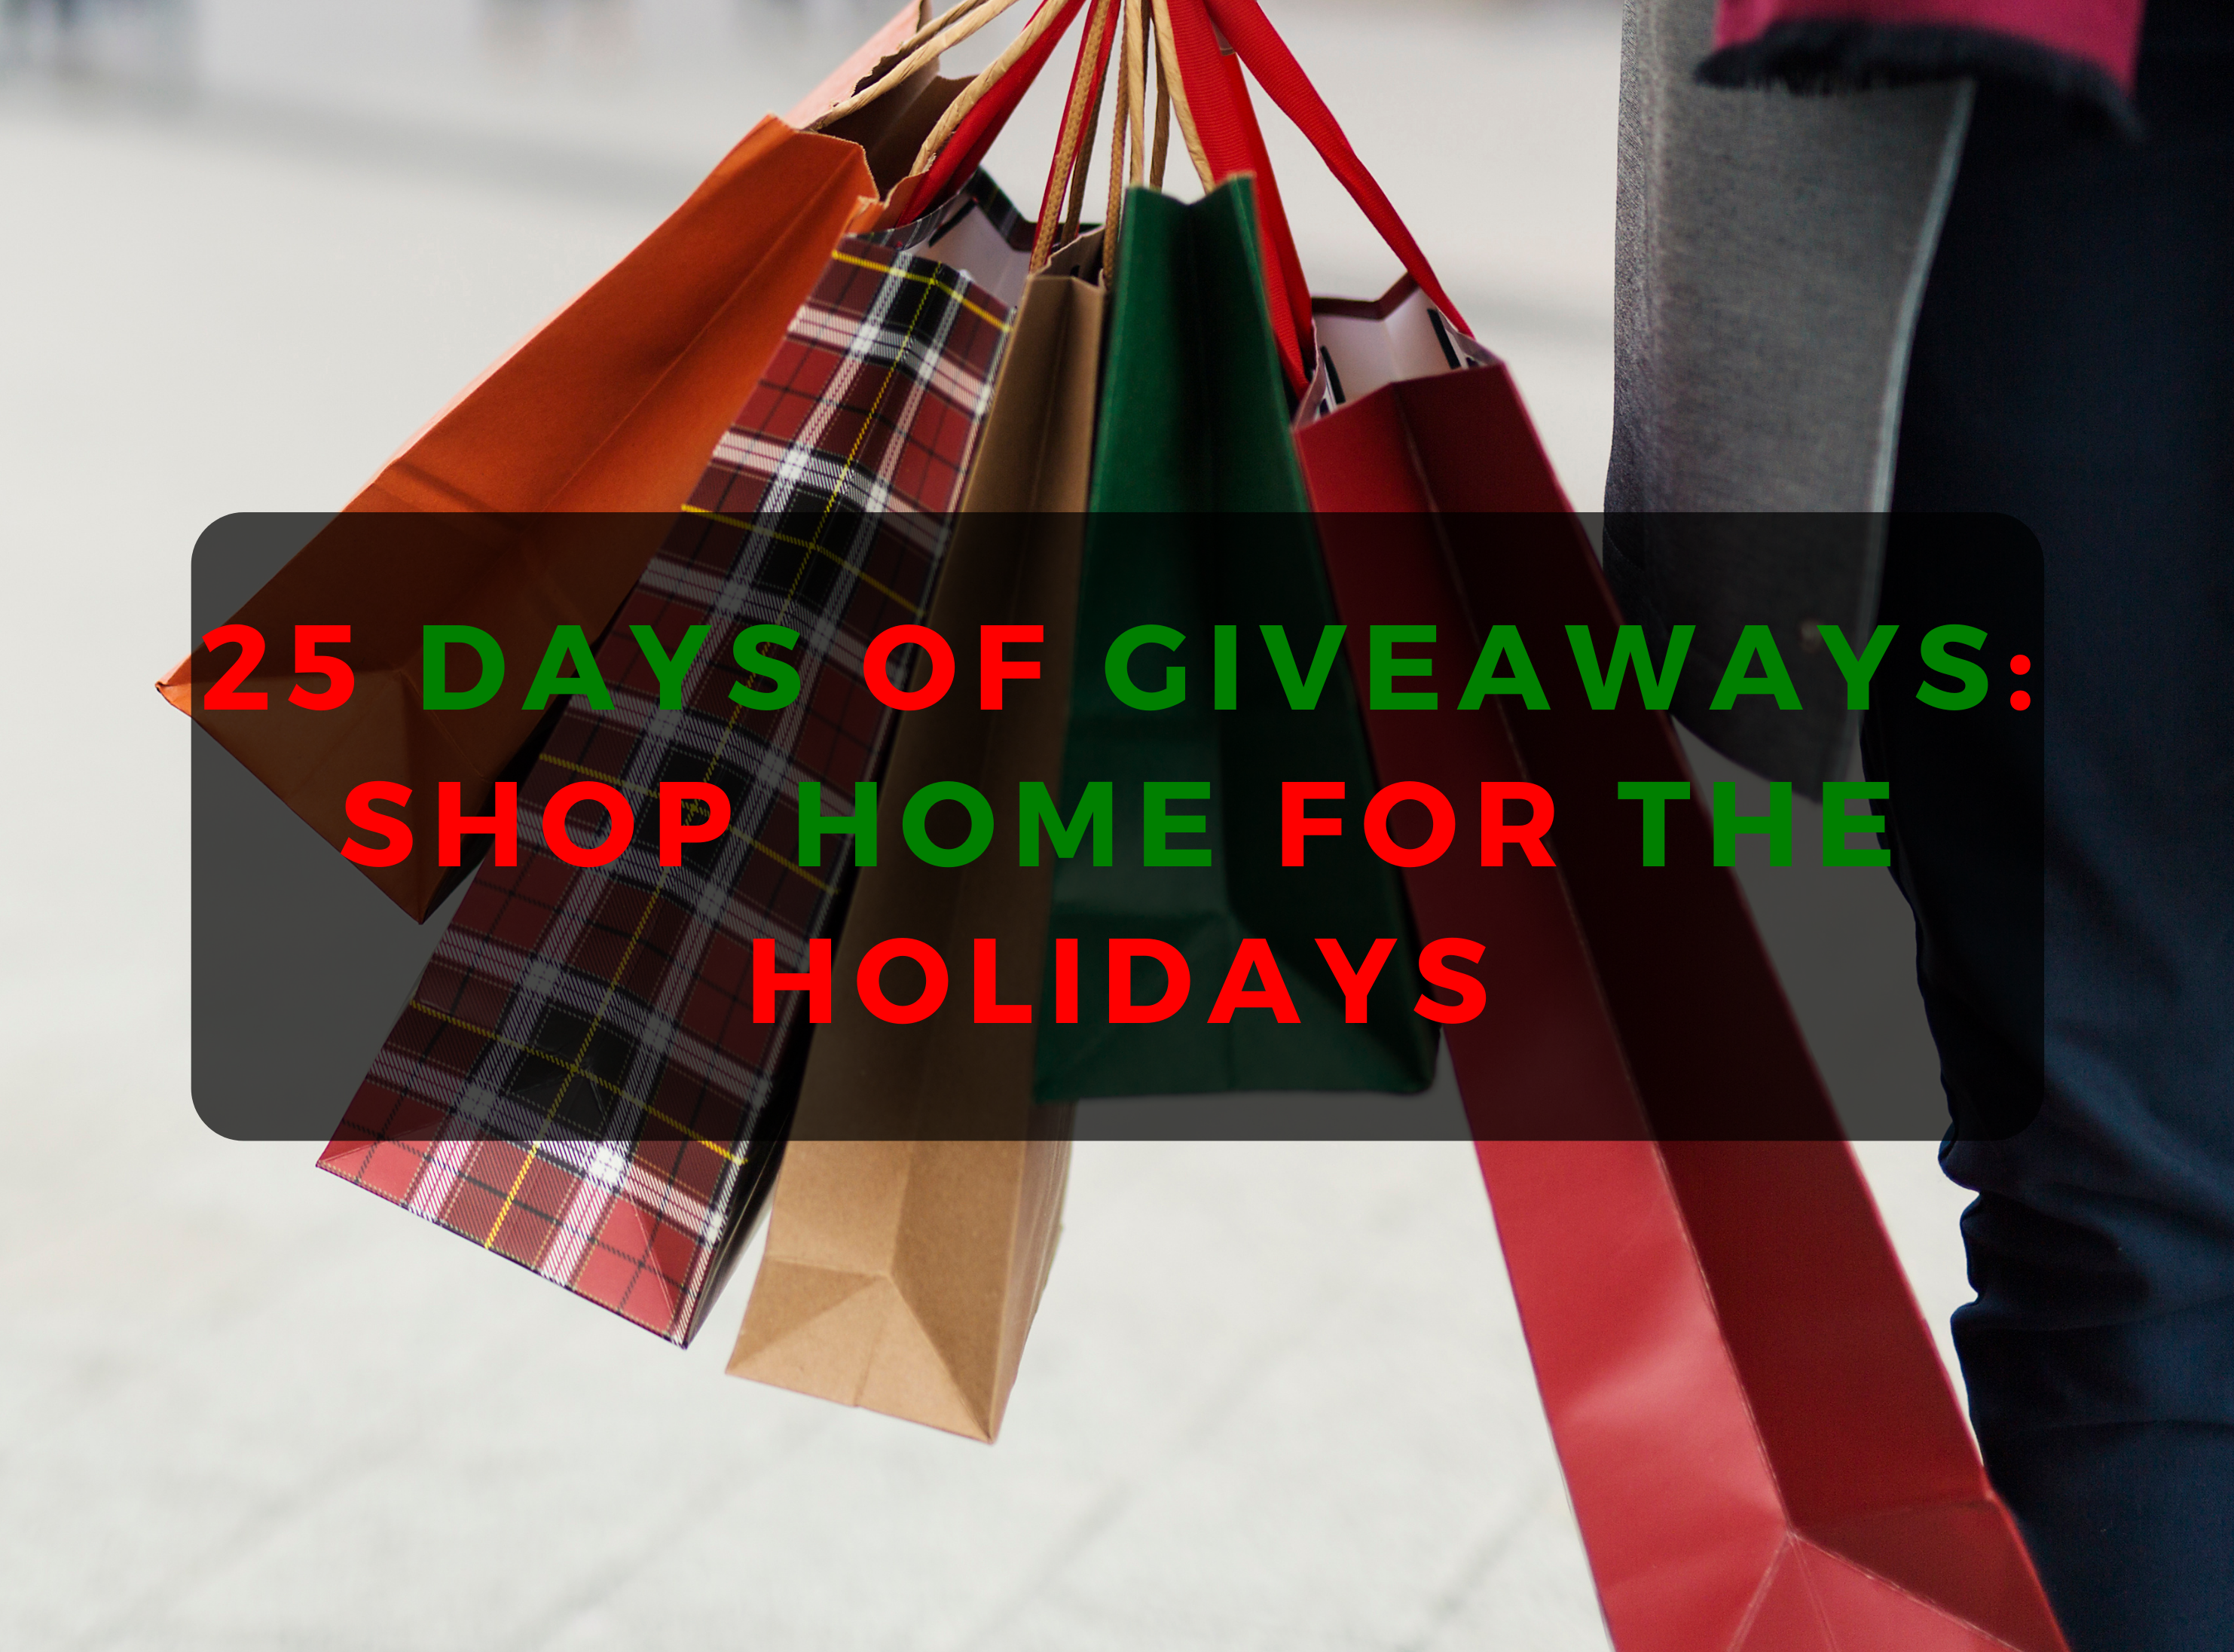 Shop Home for the Holidays